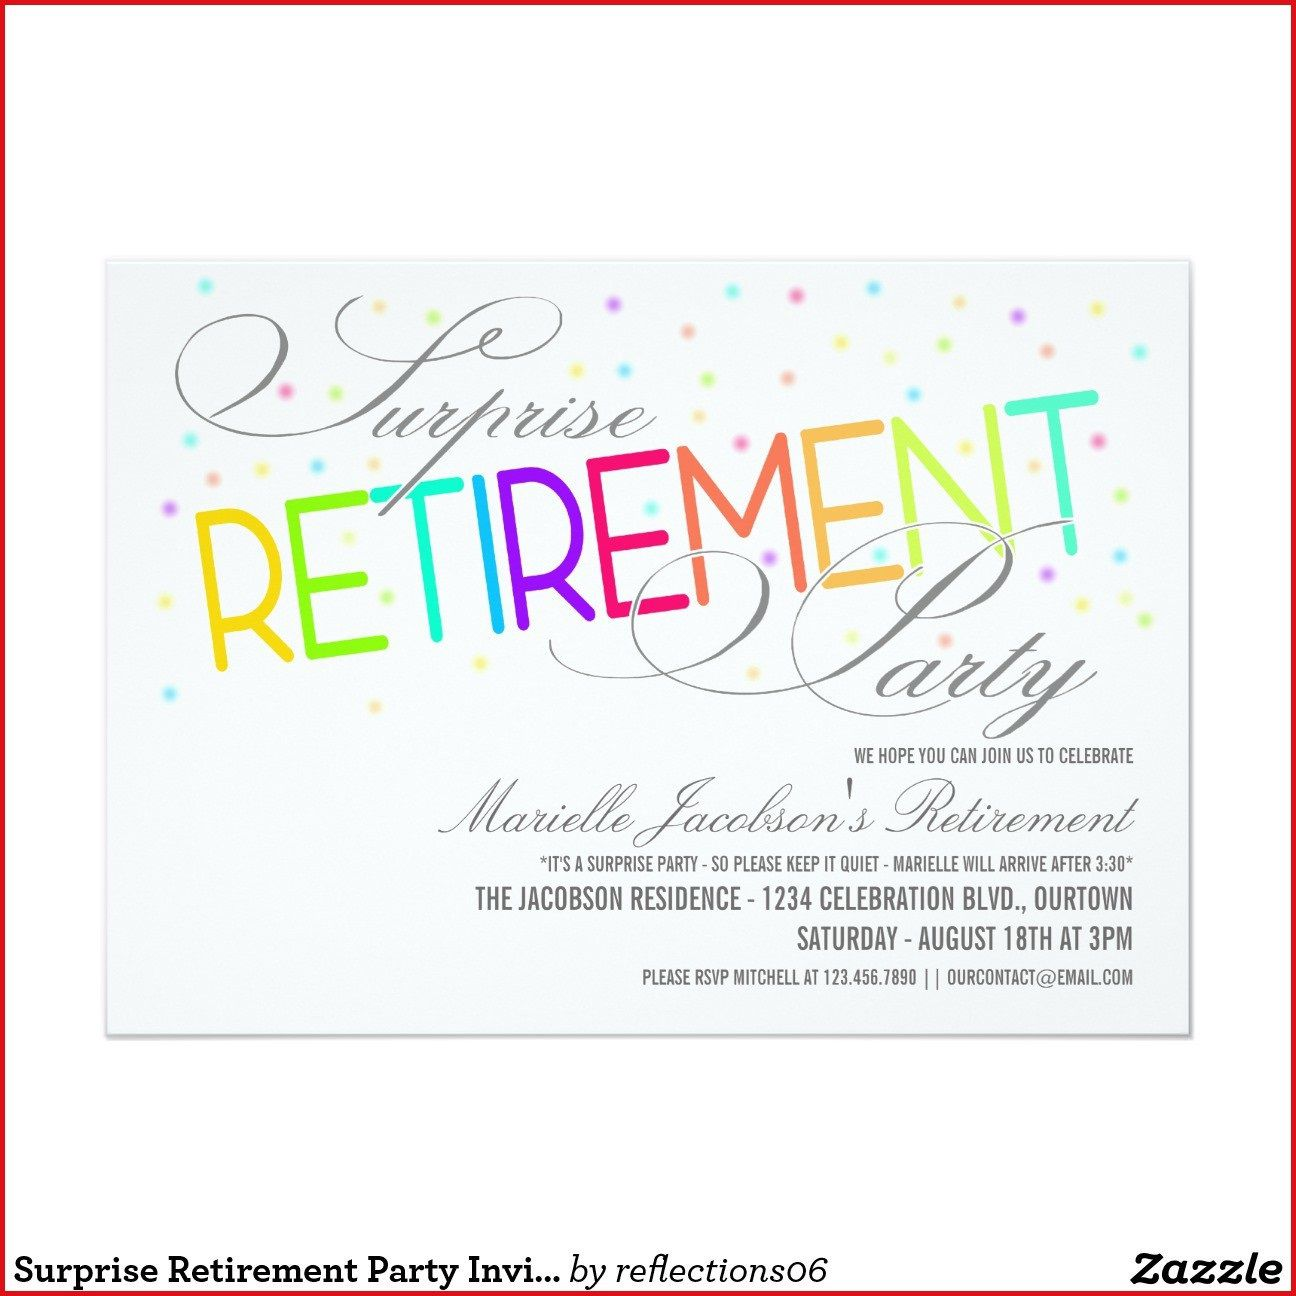 005 Fascinating Retirement Party Invitation Template Free Word Sample  MFull